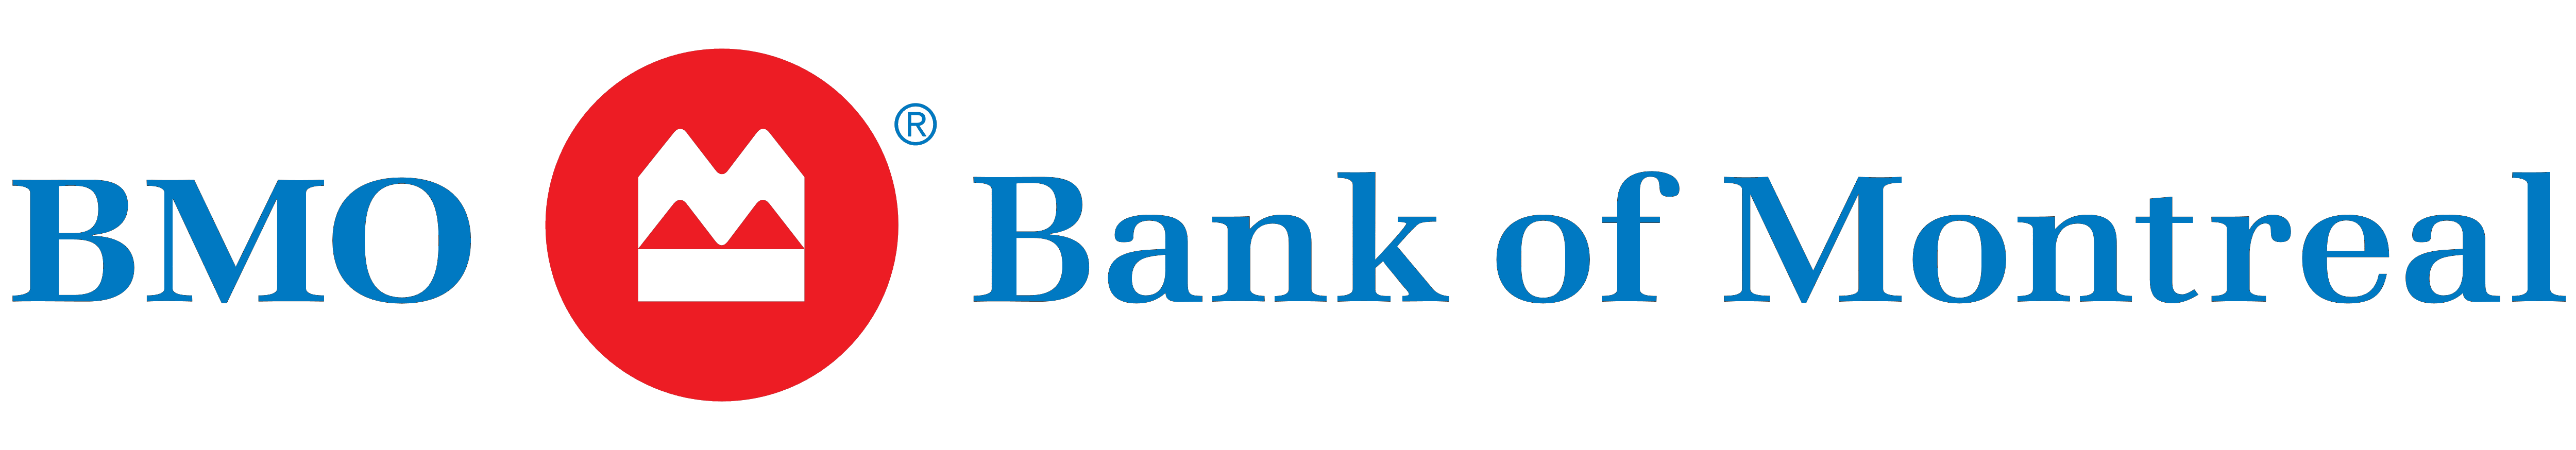 Bank-of-Montreal